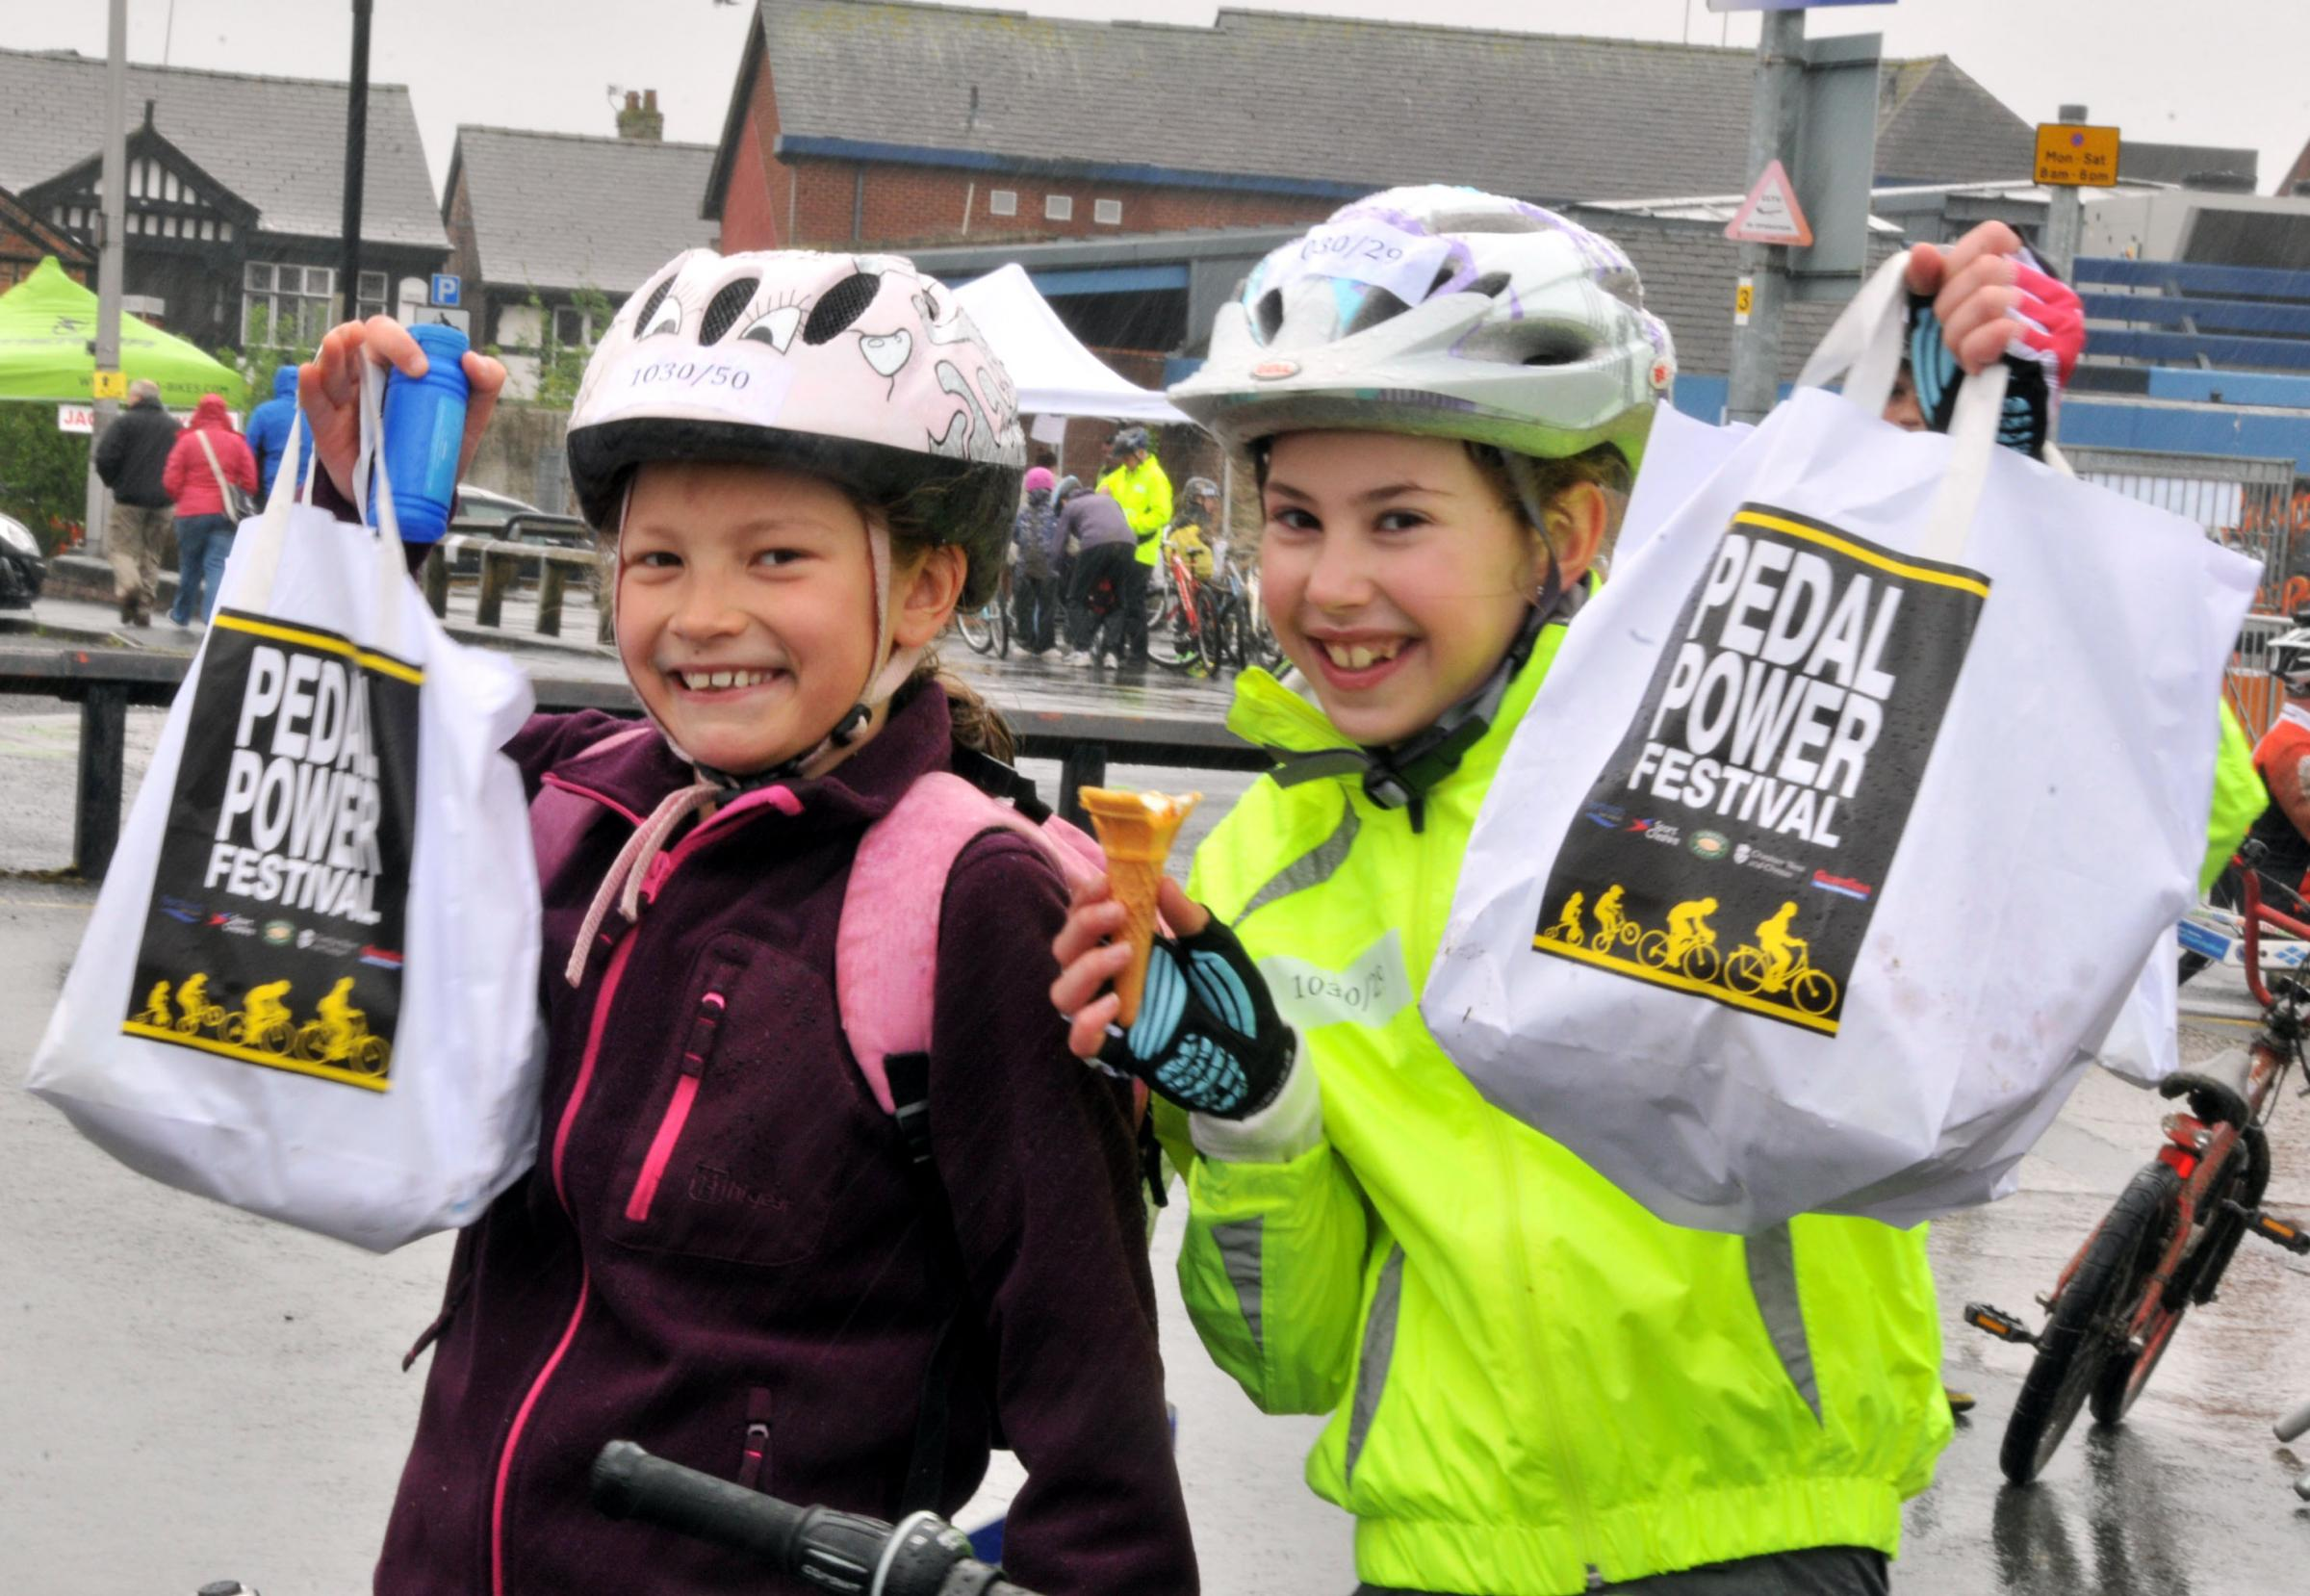 Northwich Guardian: Children pick up their Pedal Power goodie bags